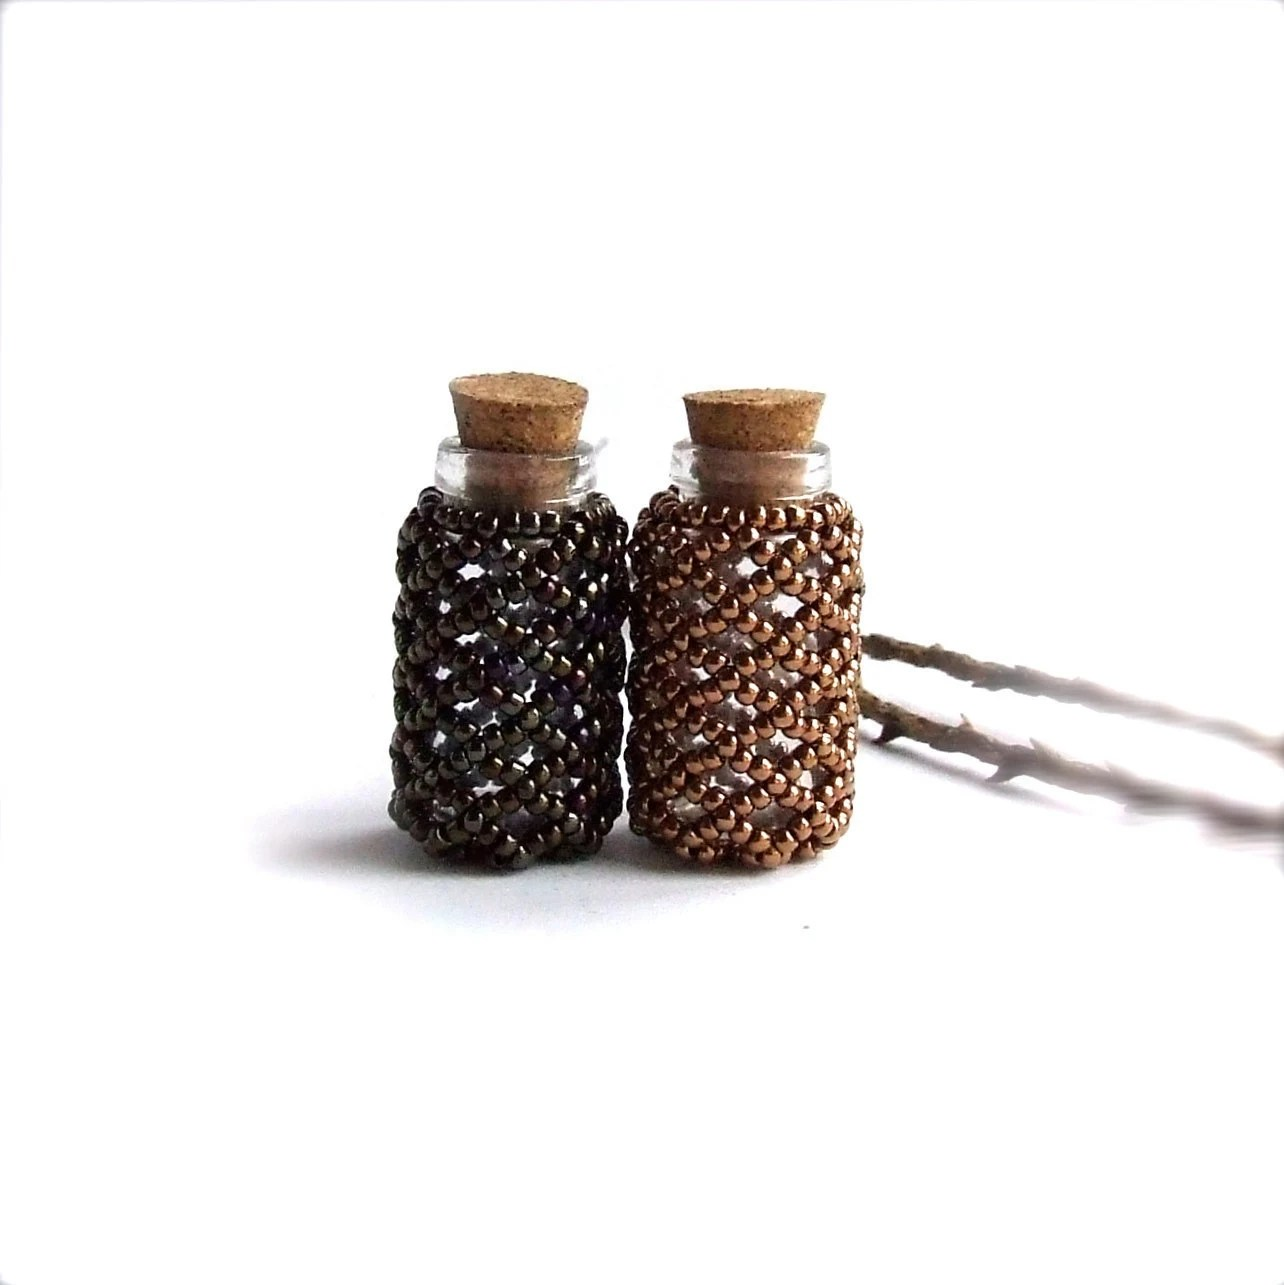 Mini Glass Seed Beaded Bottle Set - Bronze and Olive - Handmade Home Decor -Glass Vial with Cork - Bud Vase- - balanced